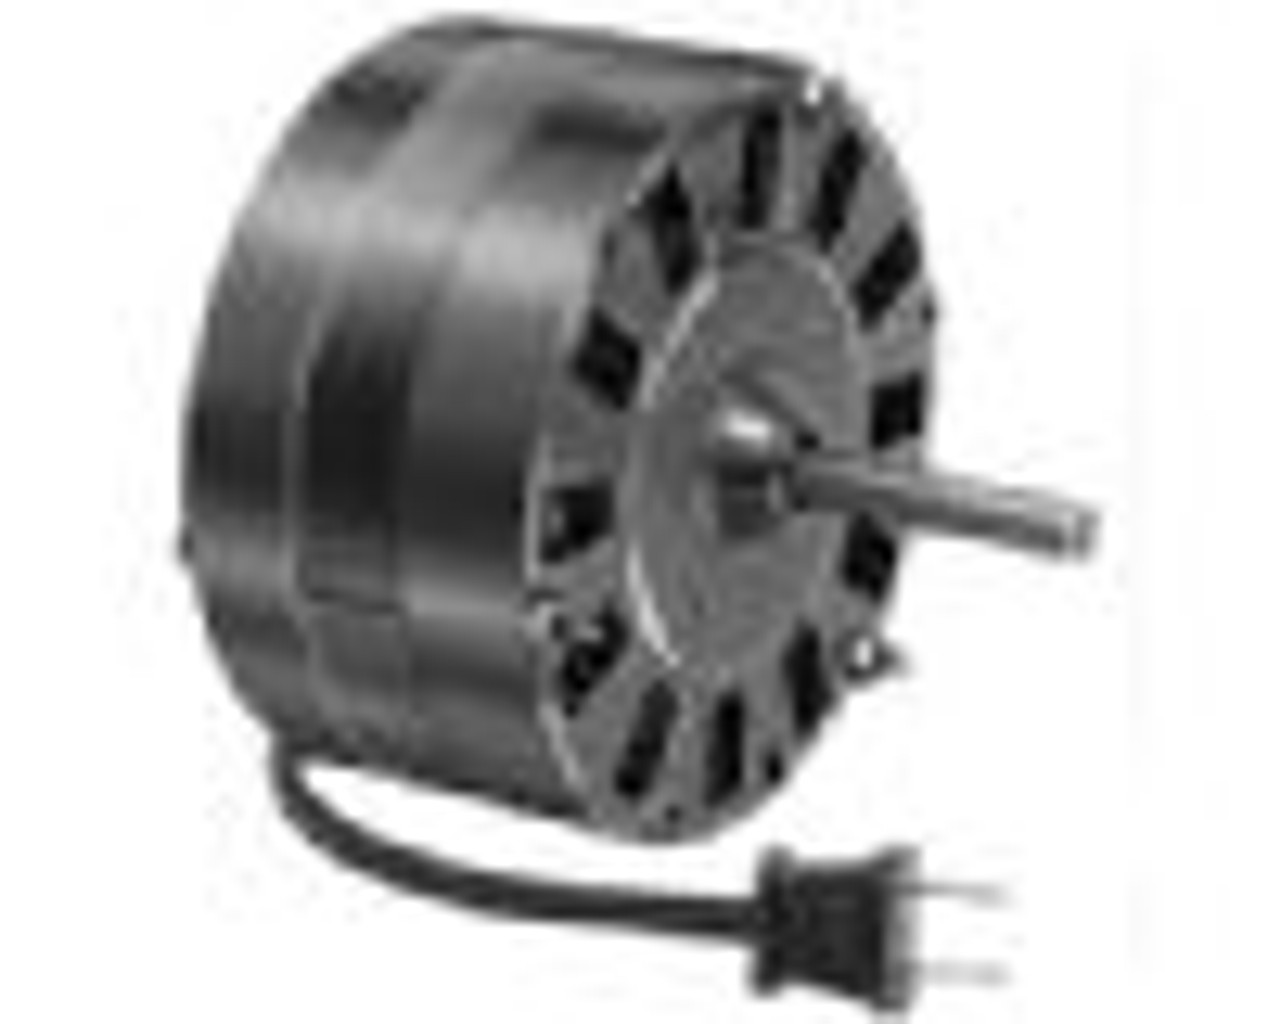 D1037 (Old number D1036)5.0 In. Ventilator and Unit Heater Motor